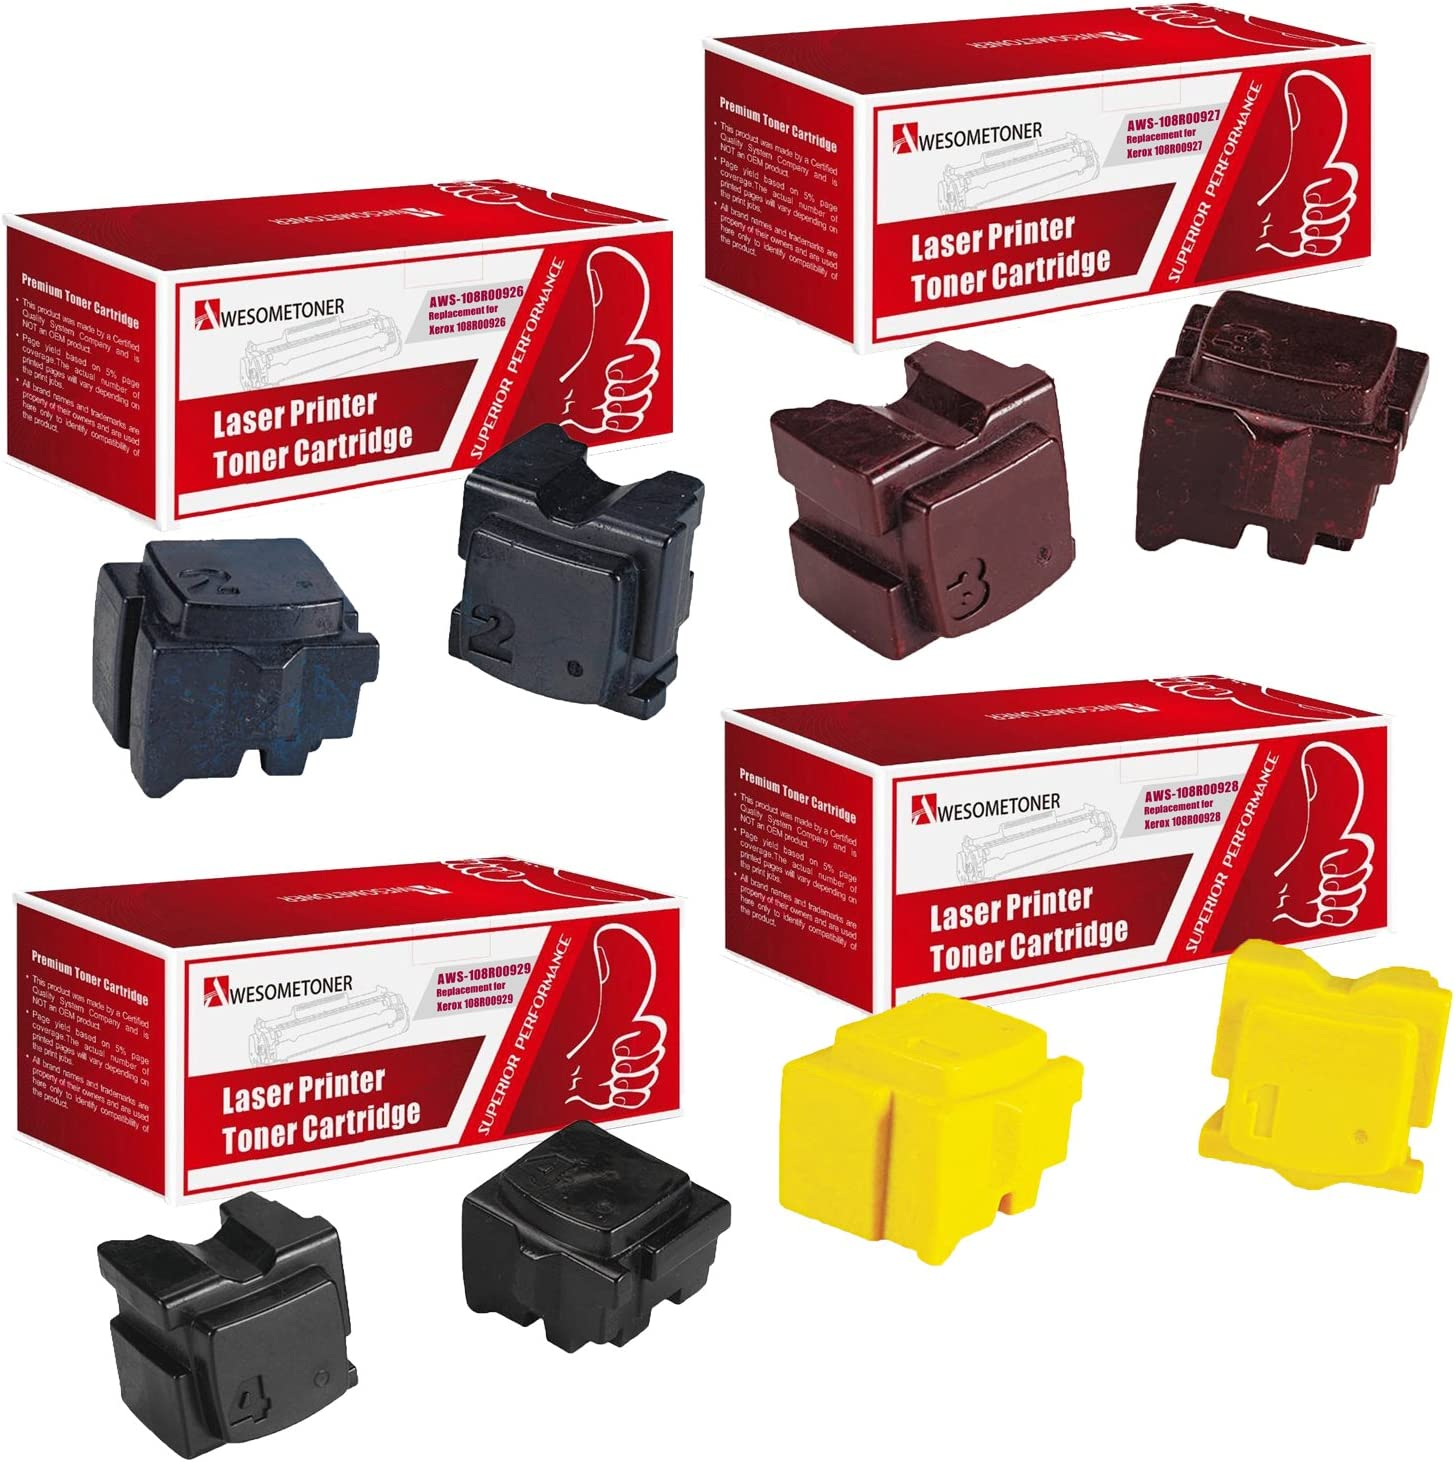 Awesometoner Compatible 2//Box 108R00929 Solid Ink for Xerox ColorQube 8570 8570DN 8570DT 8570N High Yield 4300 Pages